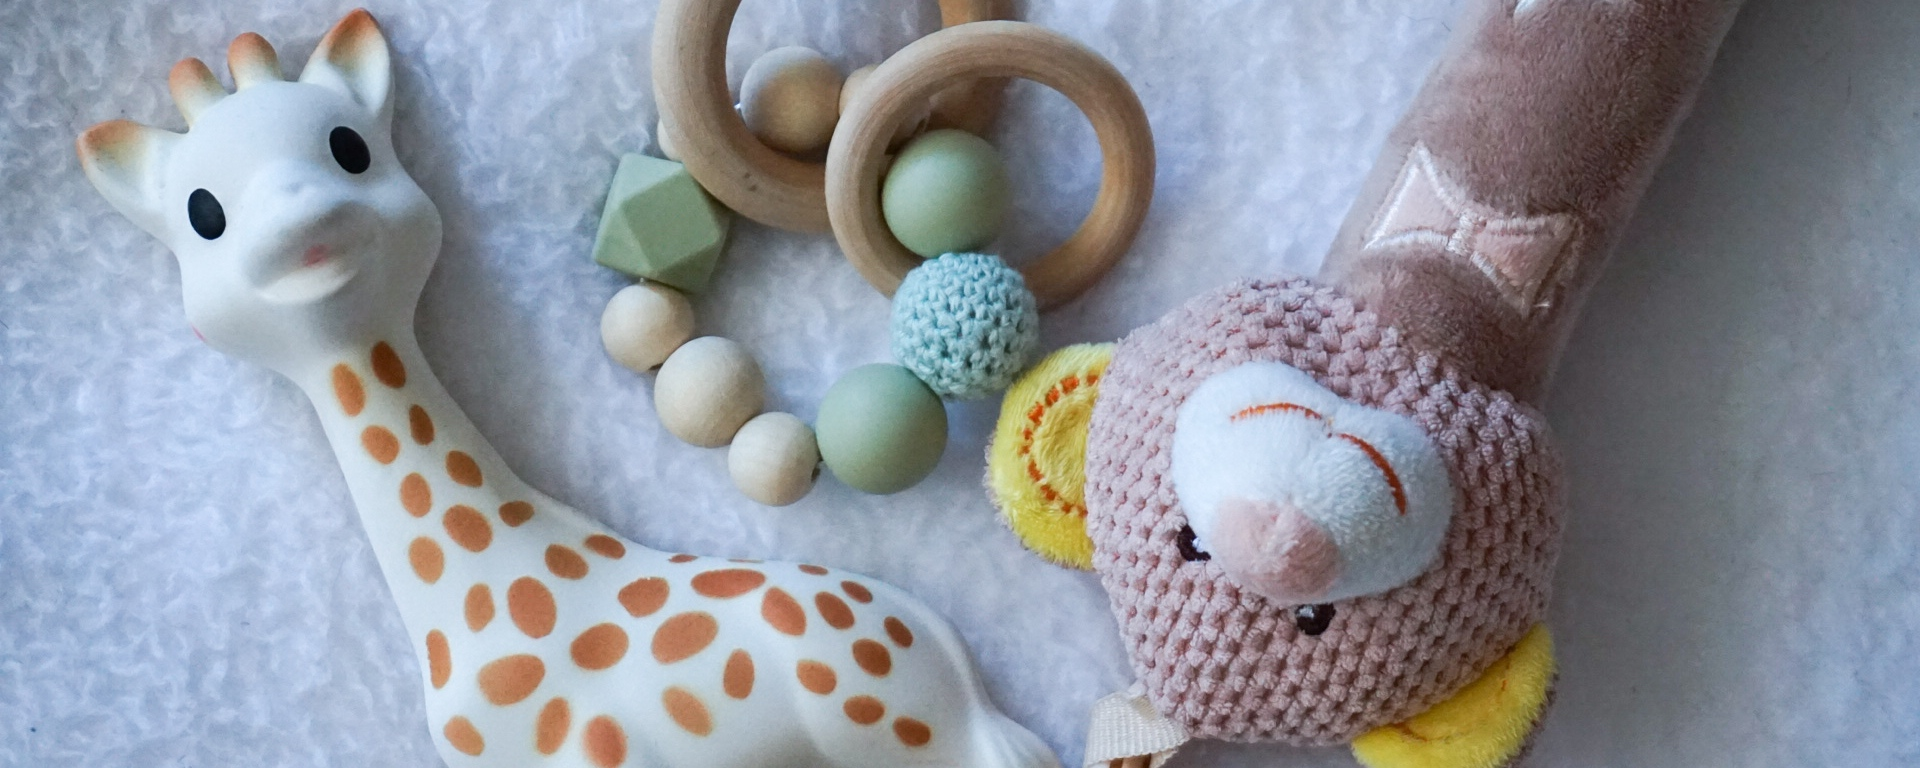 Helping your baby get through teething   Elyse Morency   Mommy and Lifestyle Blog